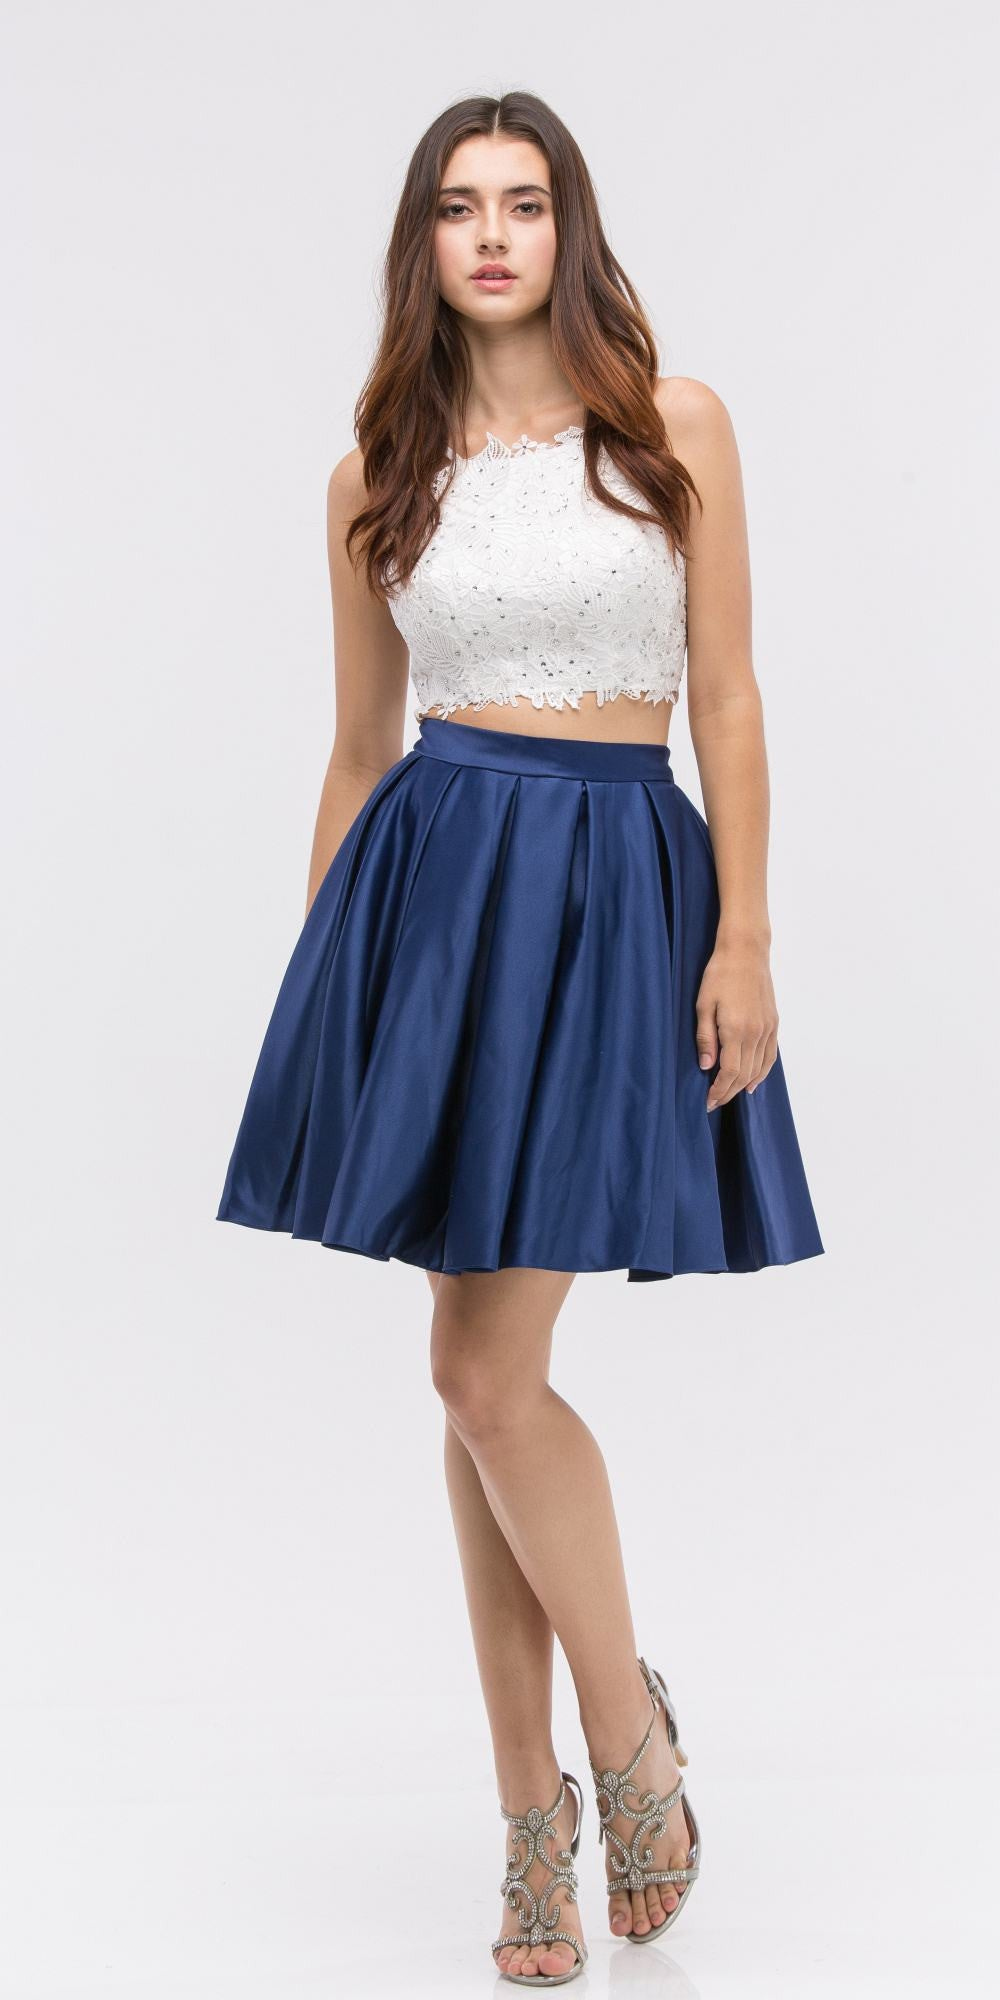 b70f072af9 Lace Crop Top Pleated Skirt Navy White Two-Piece Homecoming Dress. Tap to  expand